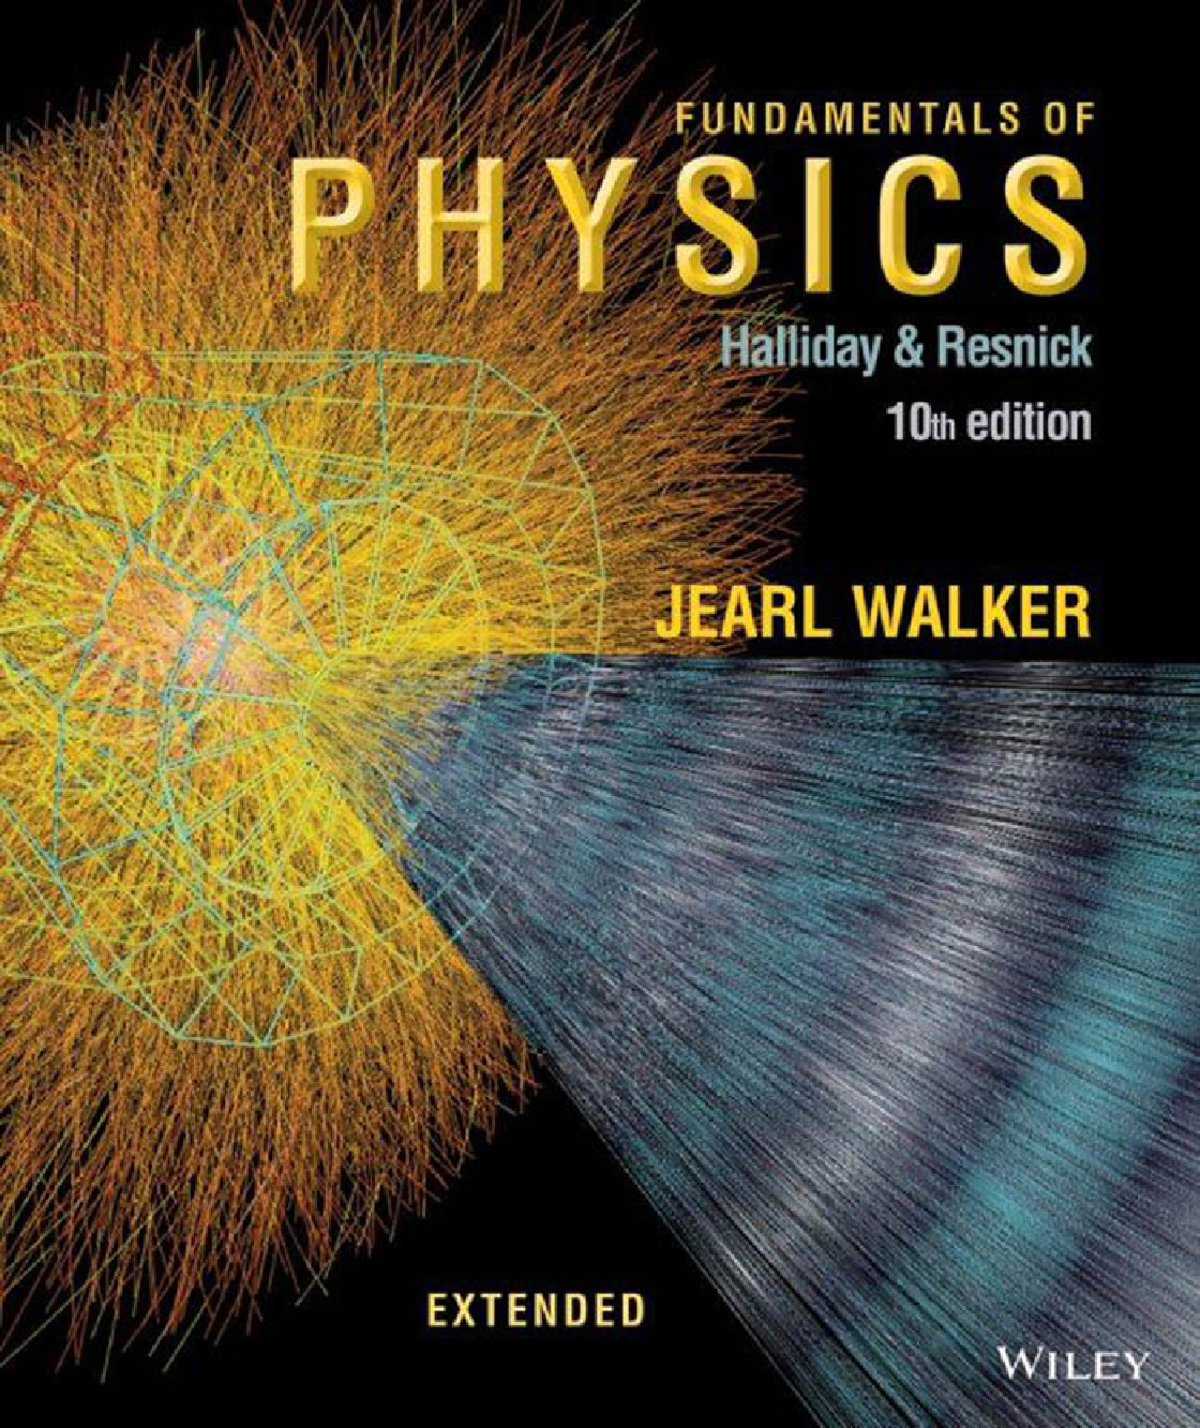 Fundamentals of Physics Extended (10th edition) (Both textbook and